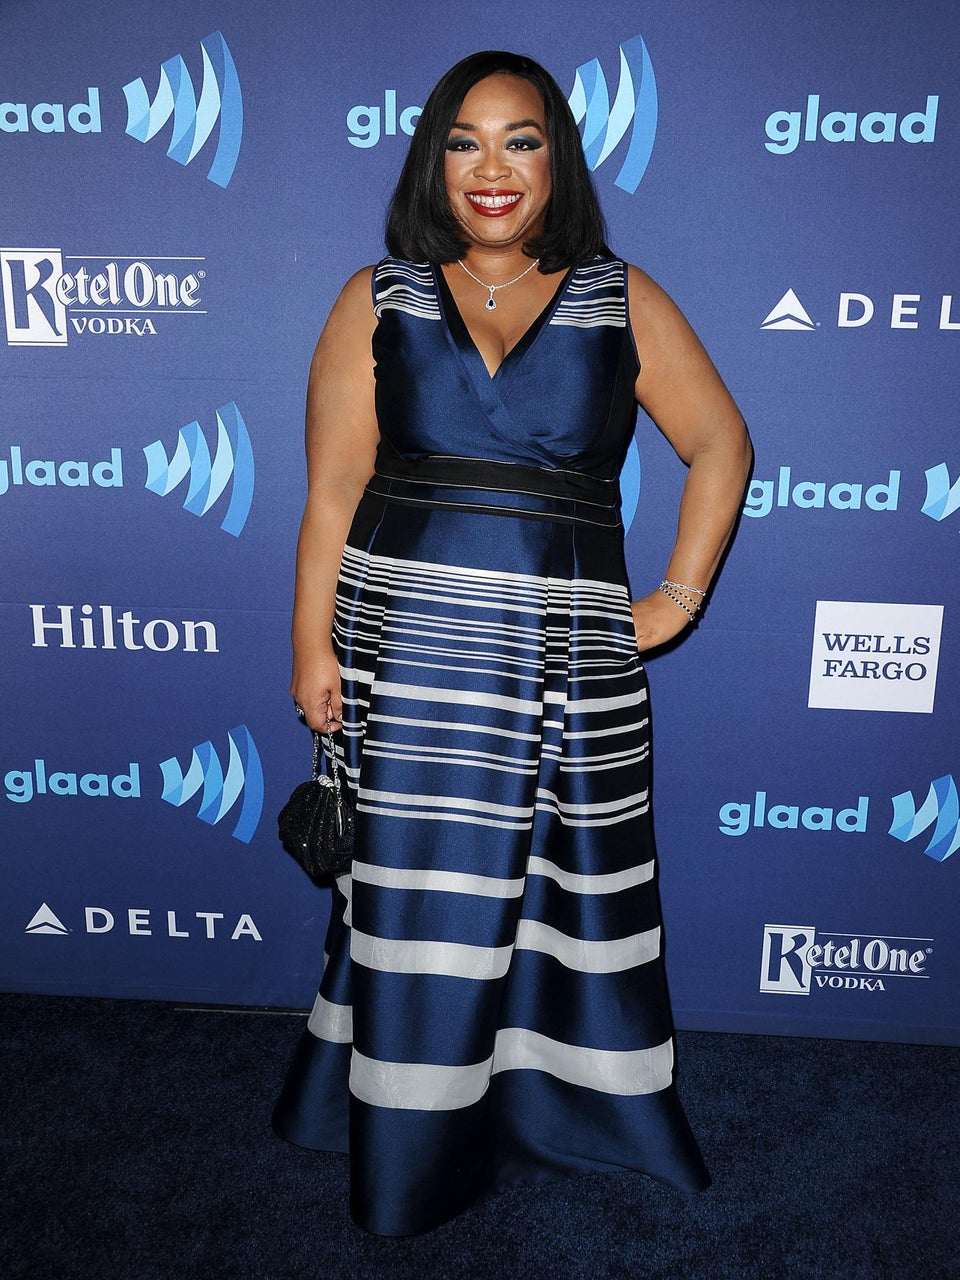 Shonda Rhimes Teams Up With 'Sanford and Son' Producer for New Docuseries Exploring American Inequality